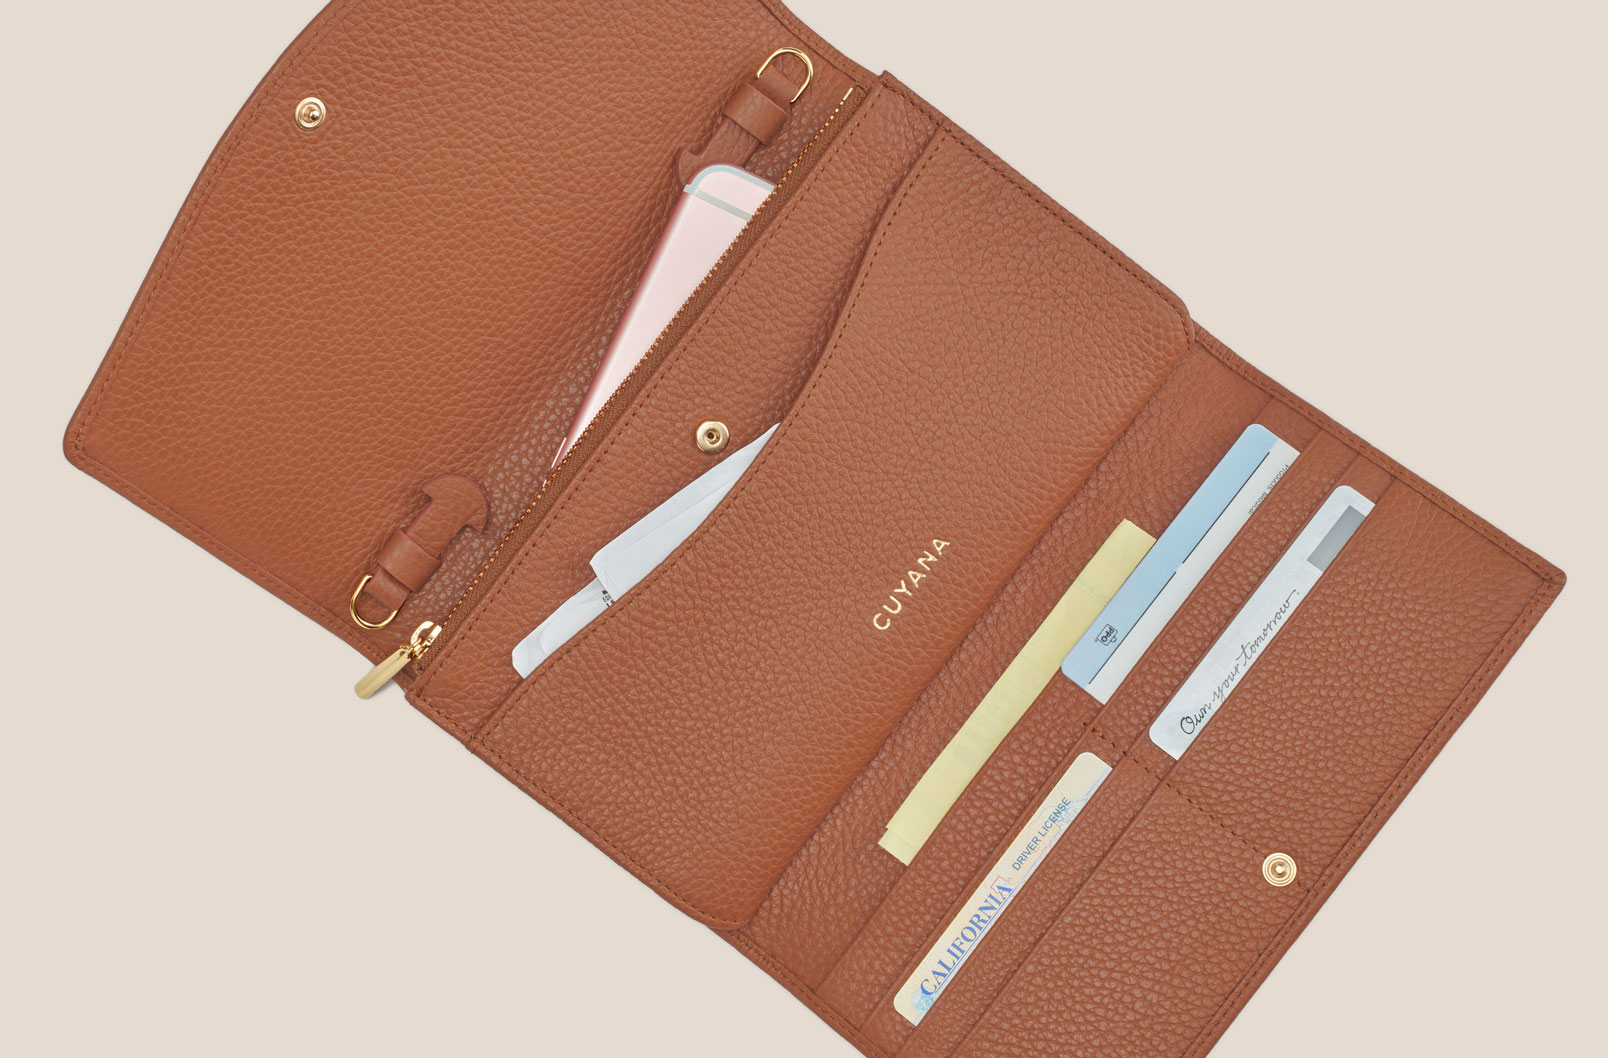 Cuyana Convertible Clutch showing zippered compartments, interior pockets, and credit card slots